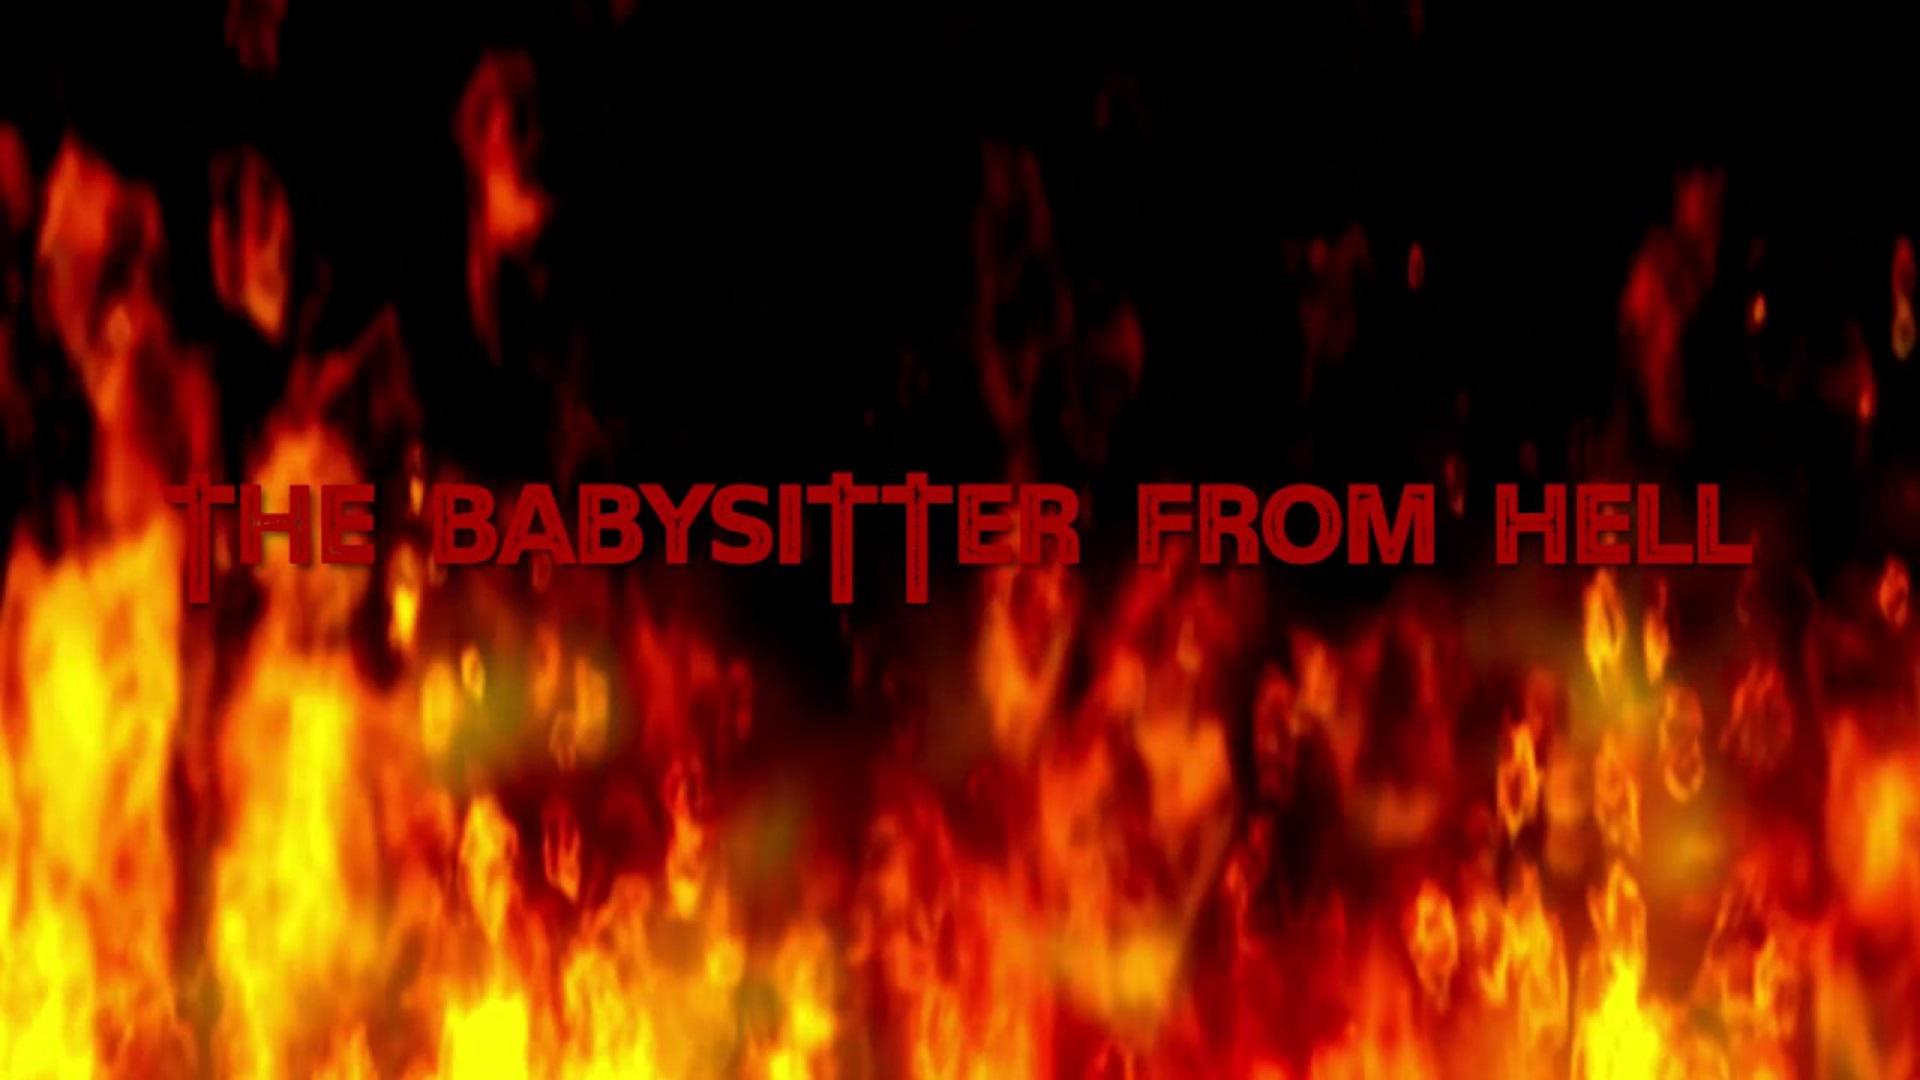 The Babysitter from Hell